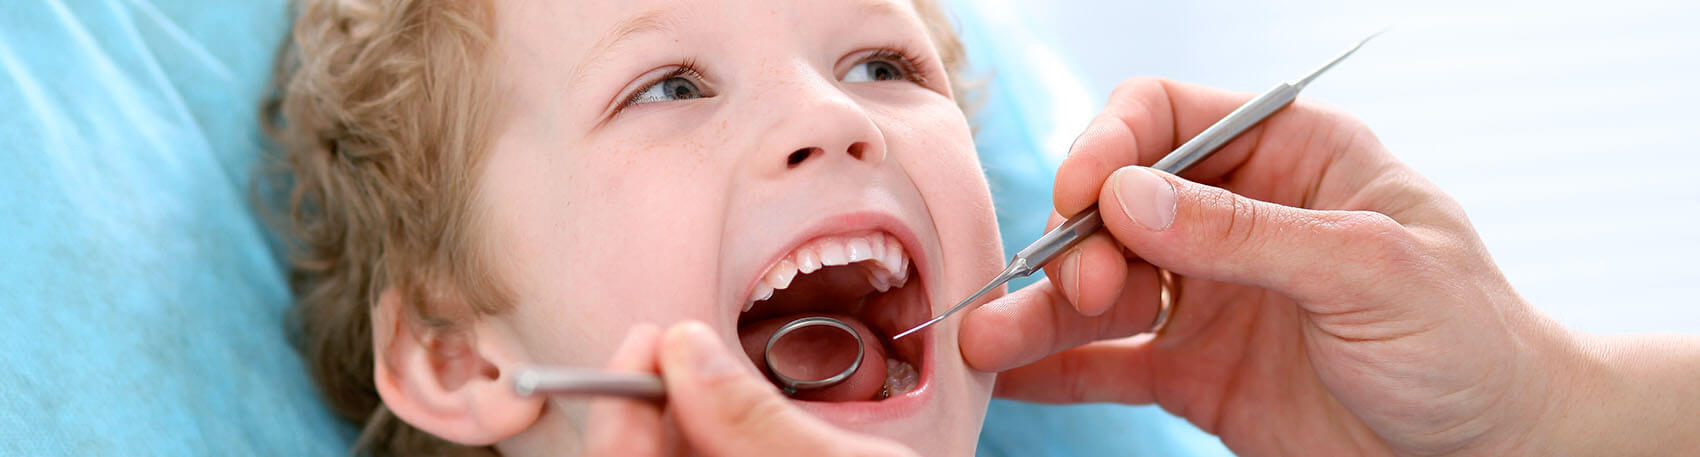 pediatric dentist in kerrville